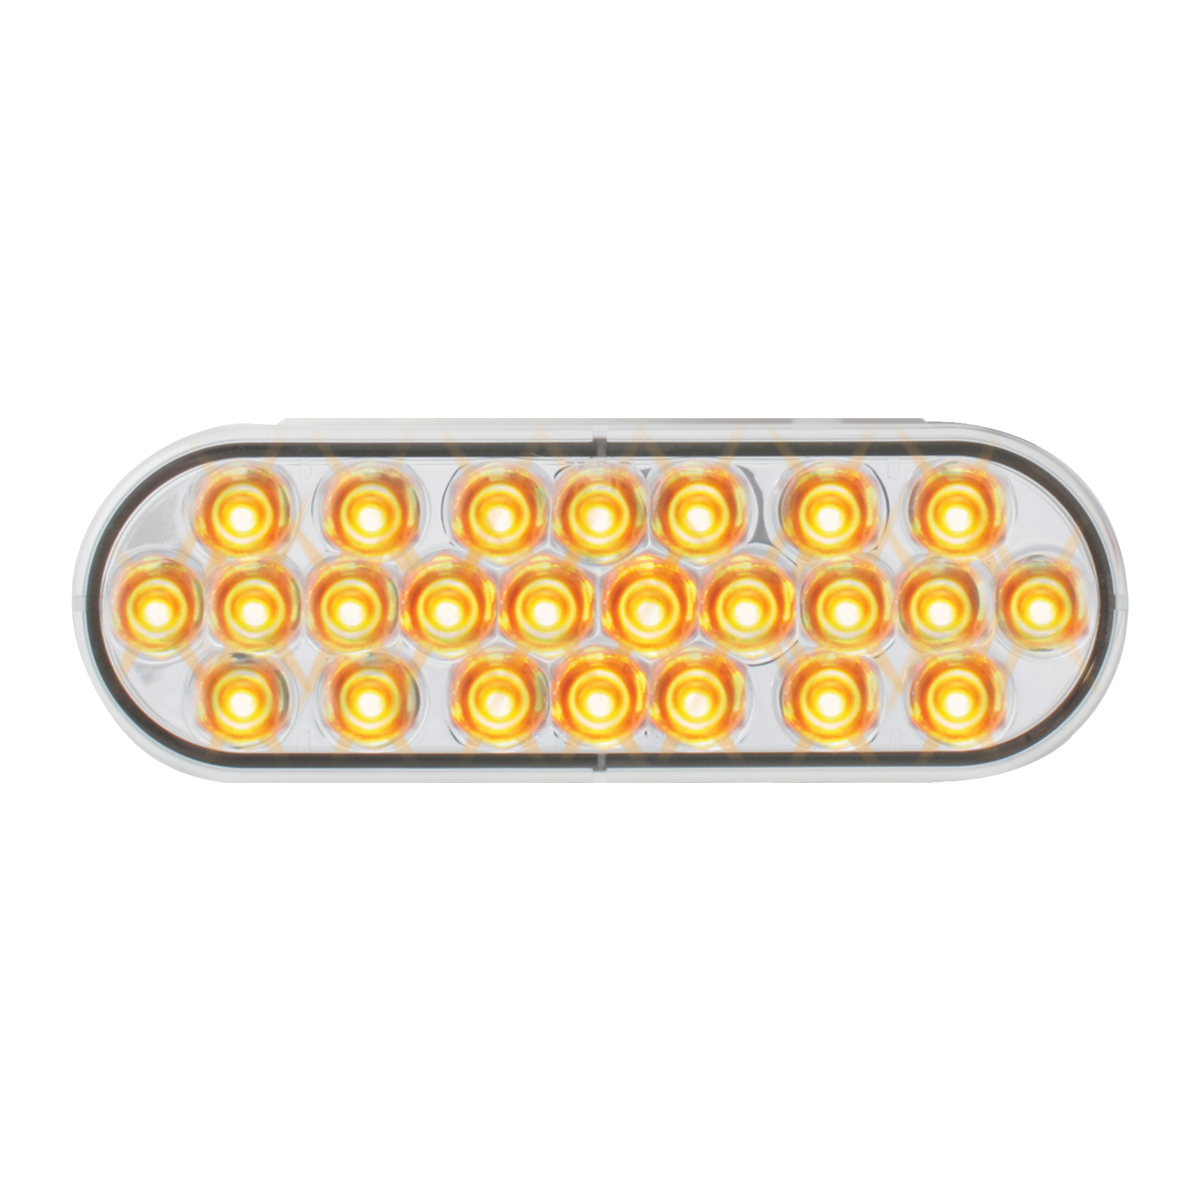 #78231 Pearl LED Flat Oval Sealed Light - Amber/Clear